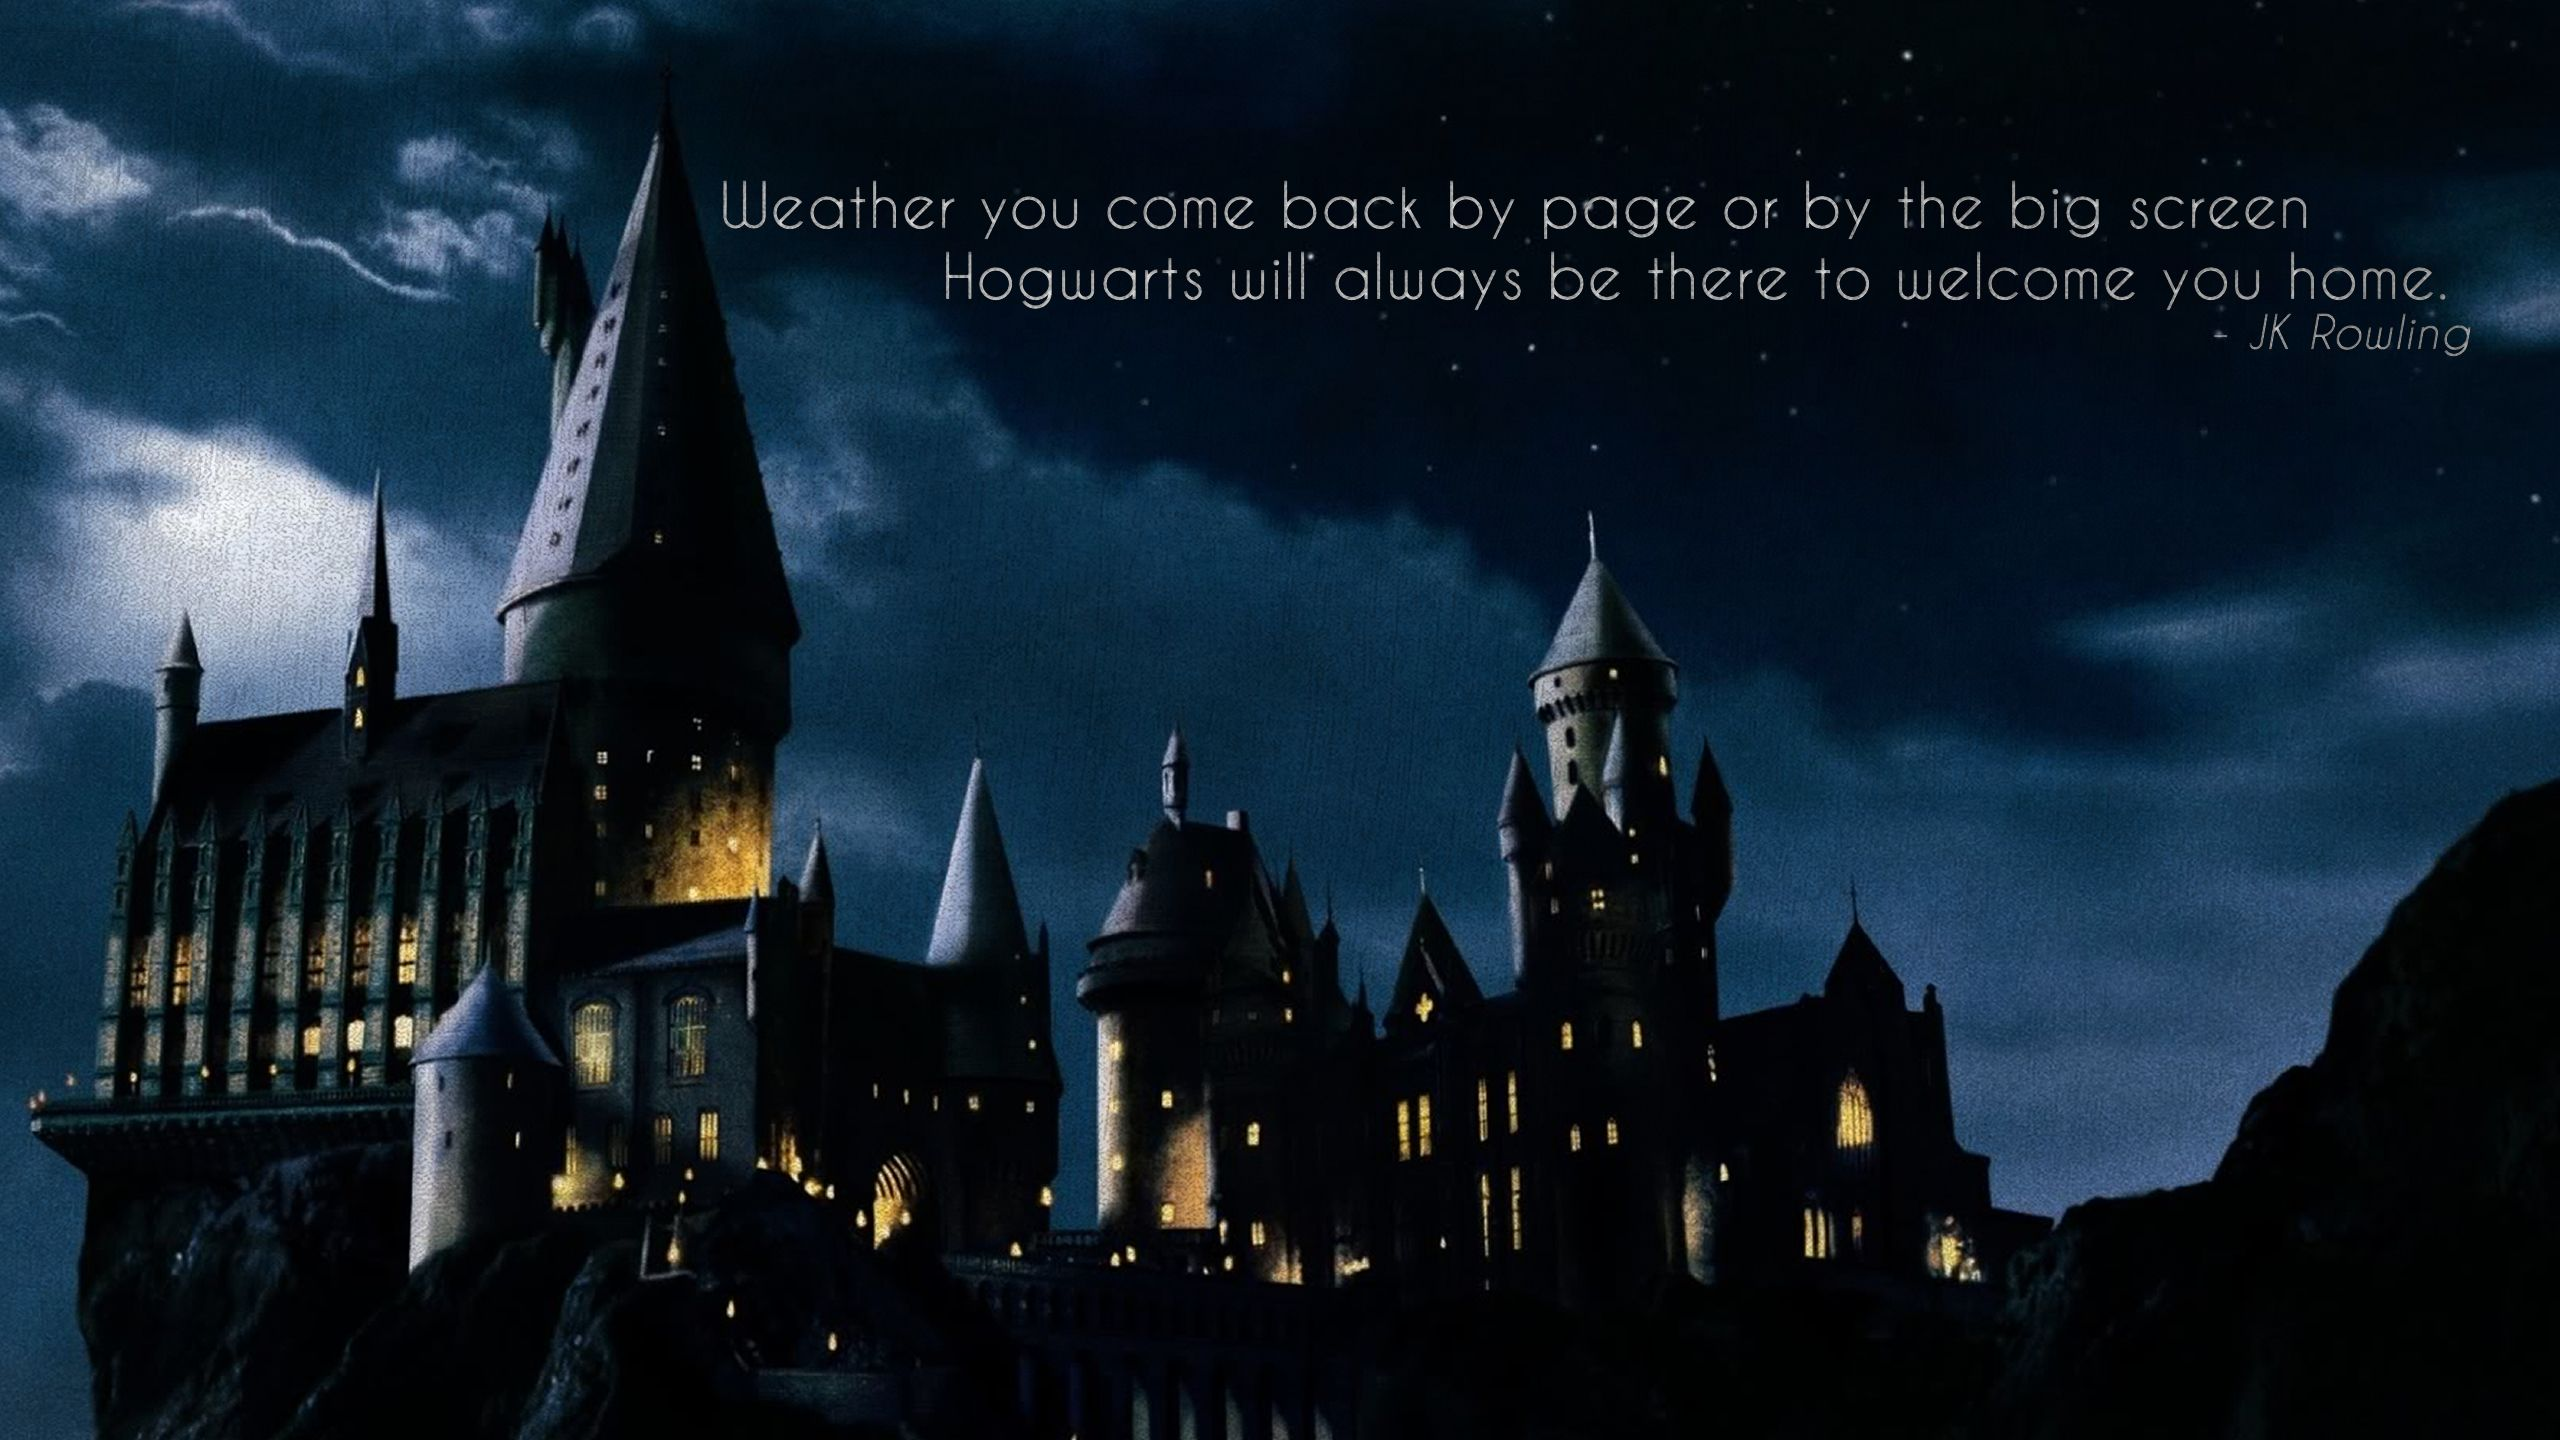 Harry Potter Amazing Hd Wallpapers High Resolution All Hd Wallpapers